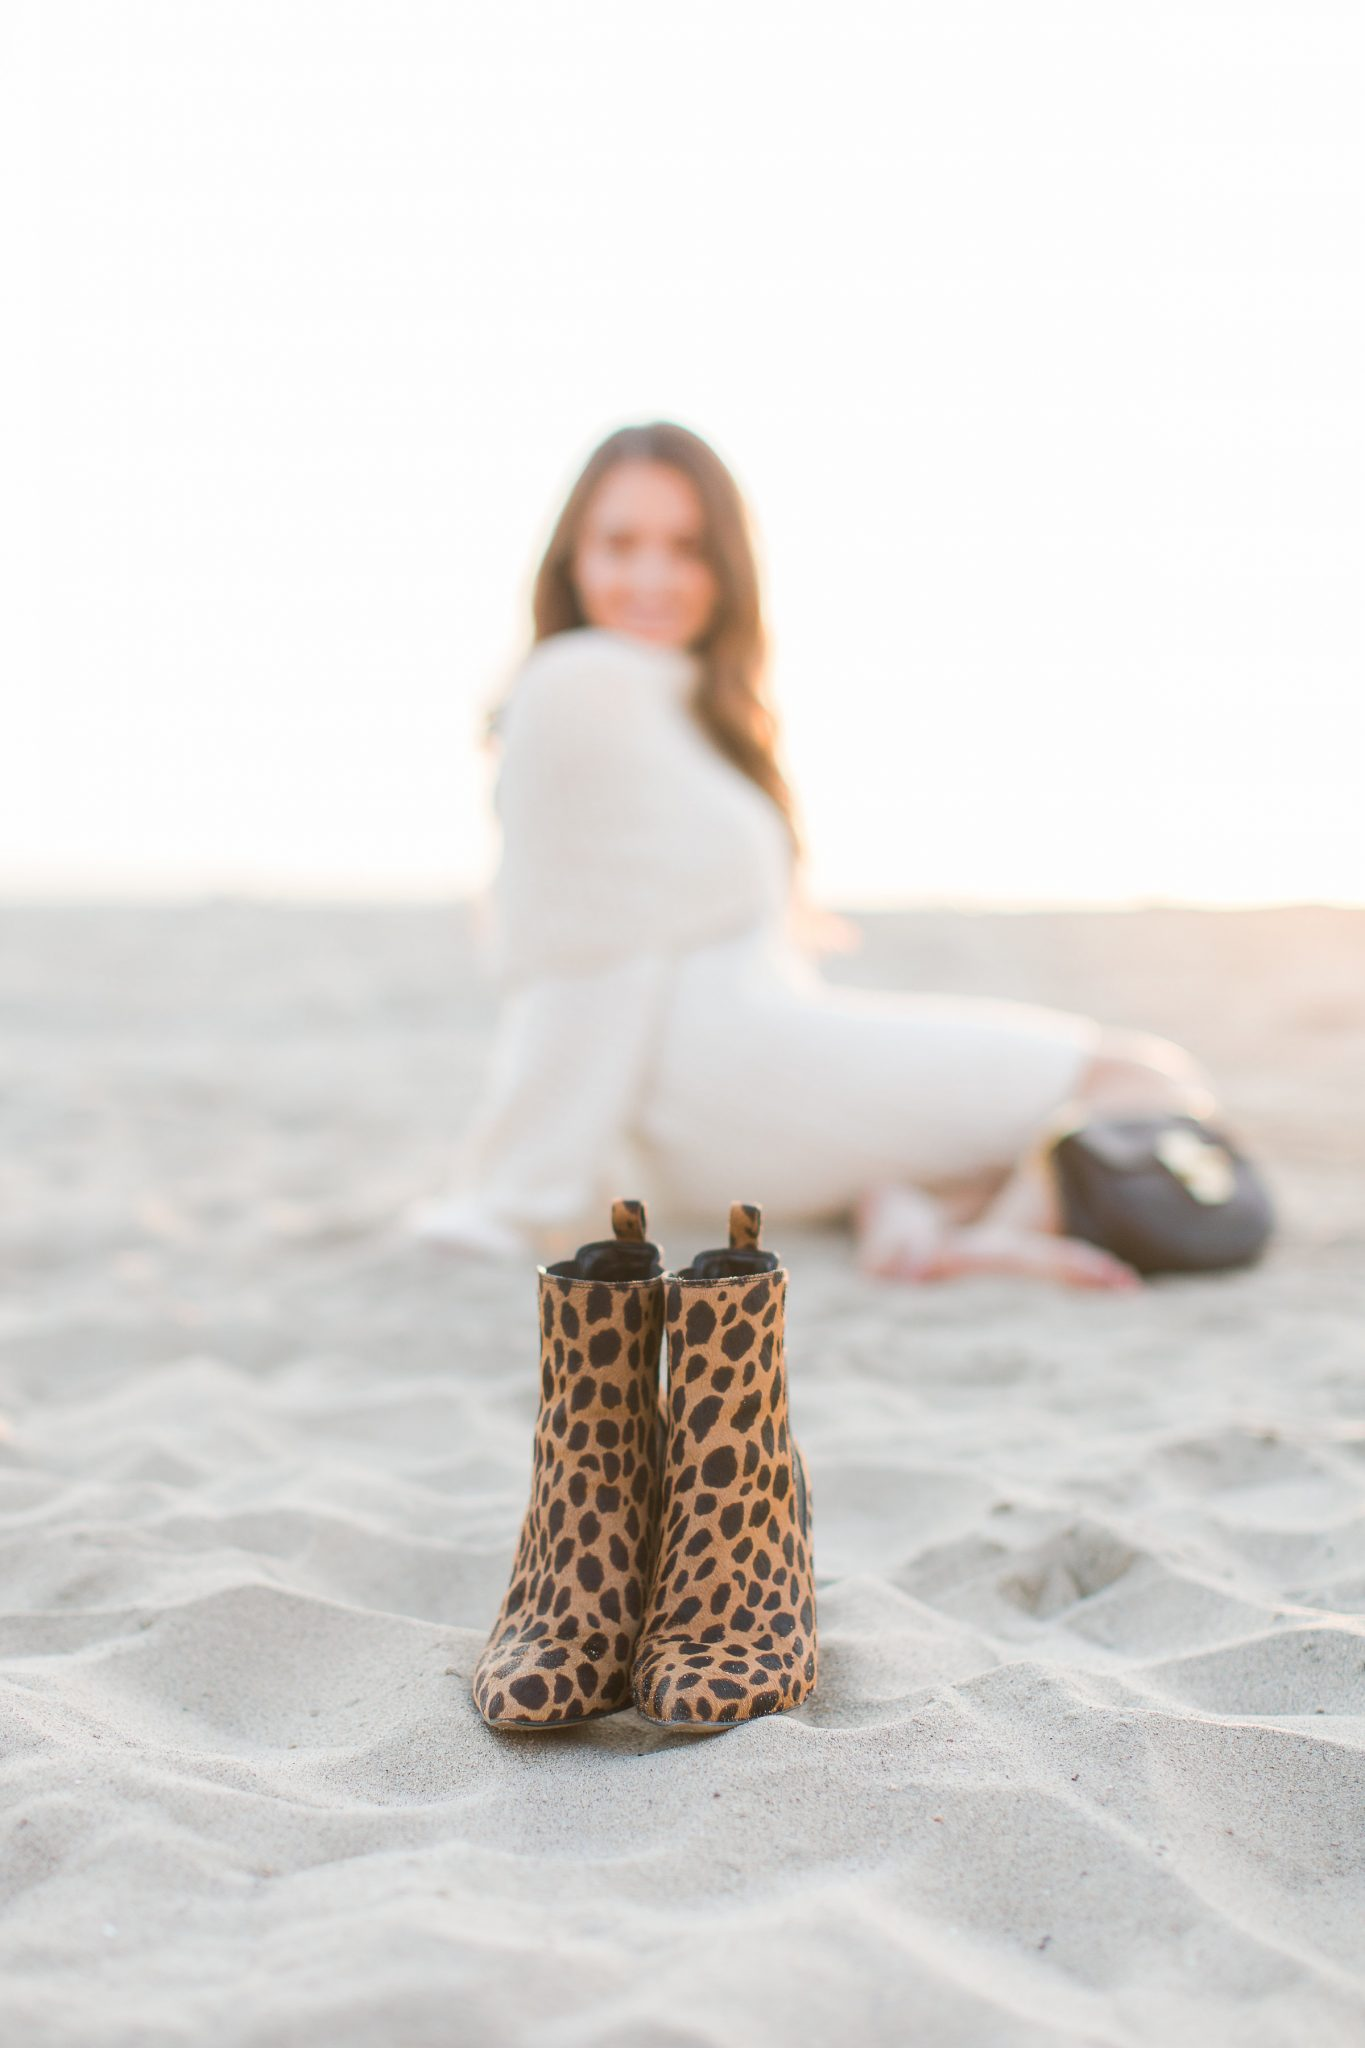 Sweater Dress with Leopard Booties - Holiday Cream Sweater Dress with The Mint Julep Boutique by popular Orange County fashion blogger Maxie Elle